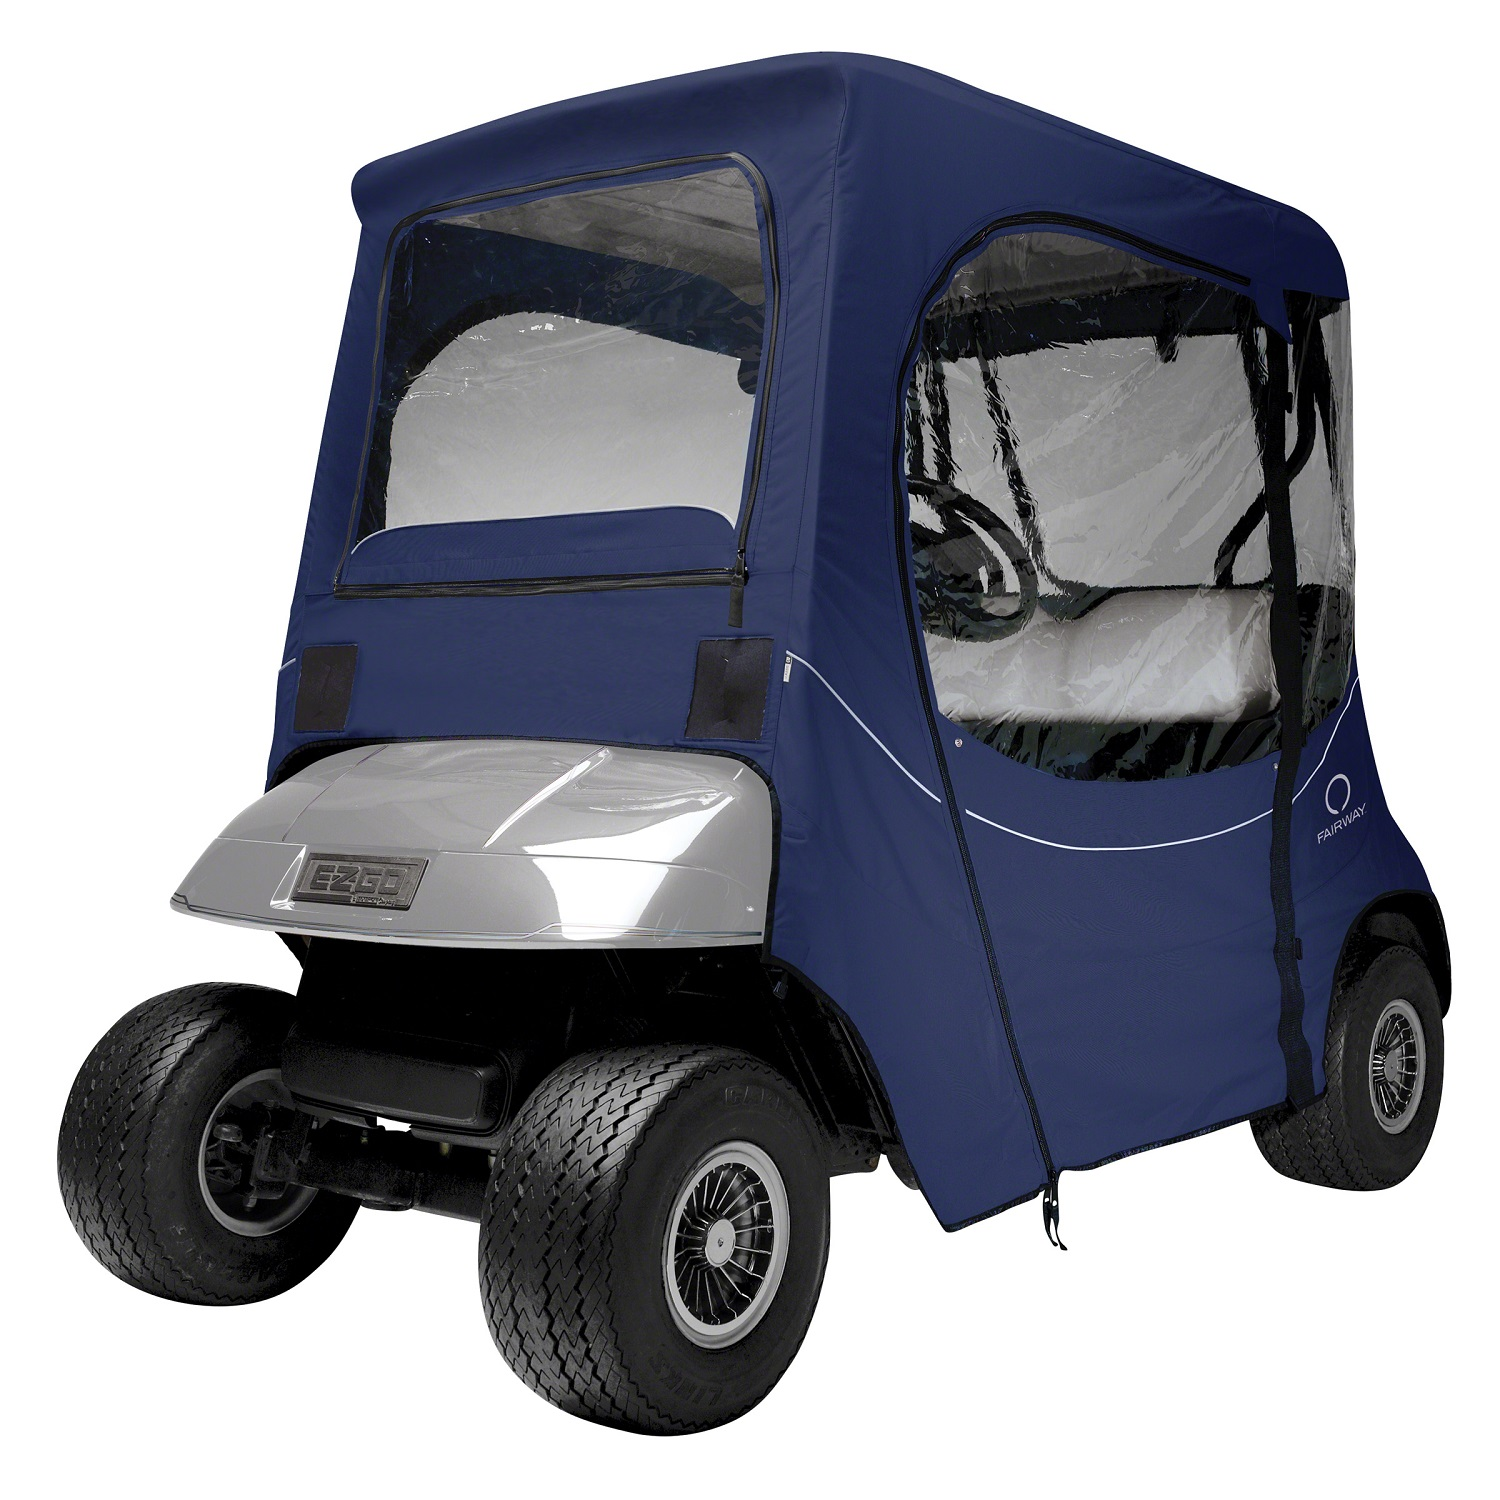 Fairway Golf Cart FadeSafe E-Z-Go Enclosure - Navy